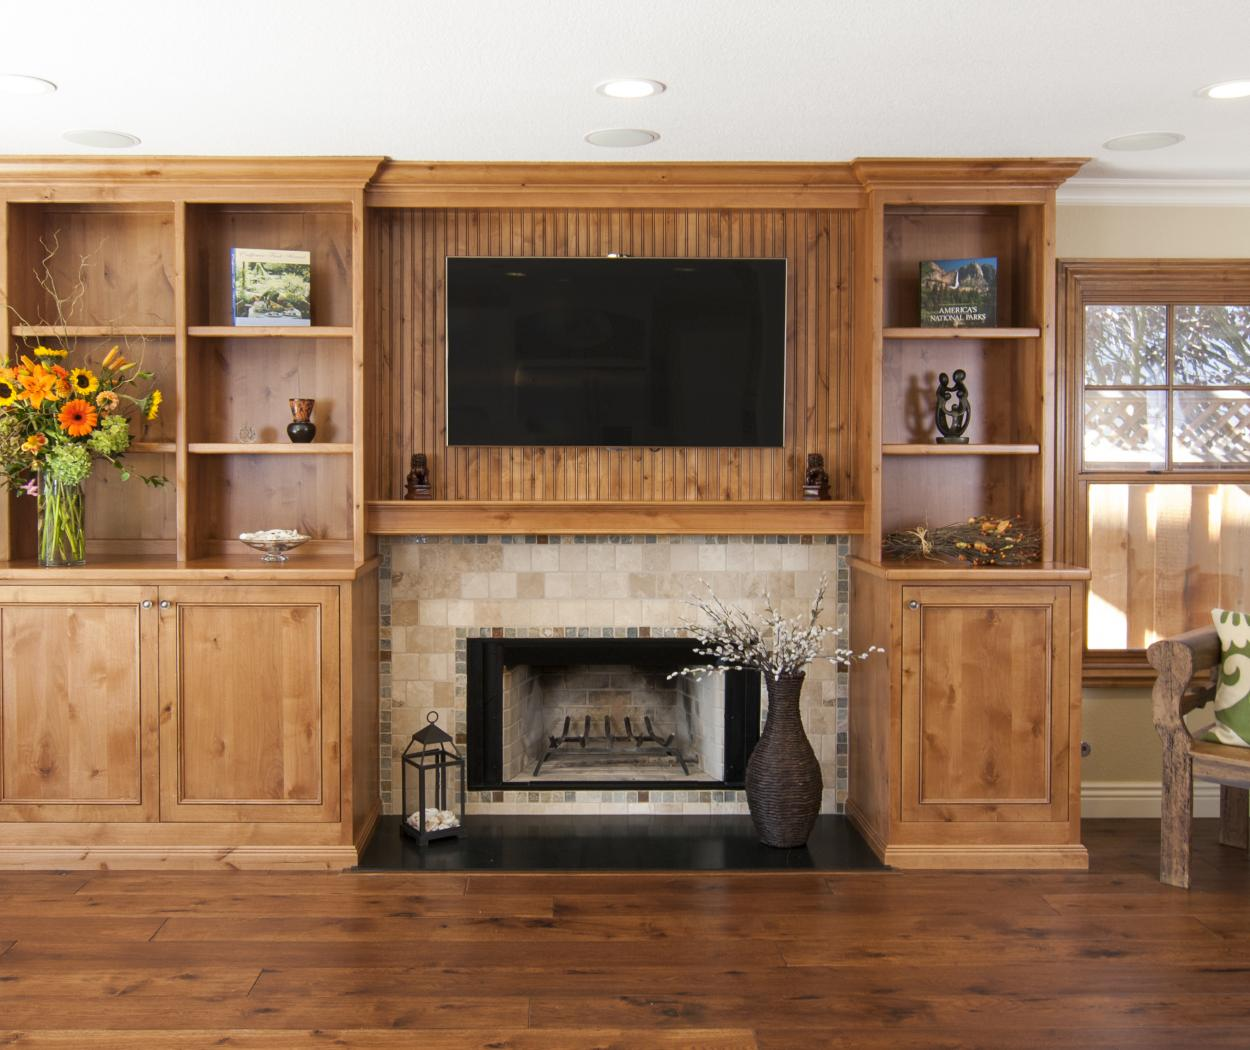 Beautiful Transitional, Entertainment Center Built in Knotty Alder with Open Shelves and Beadboard Backing